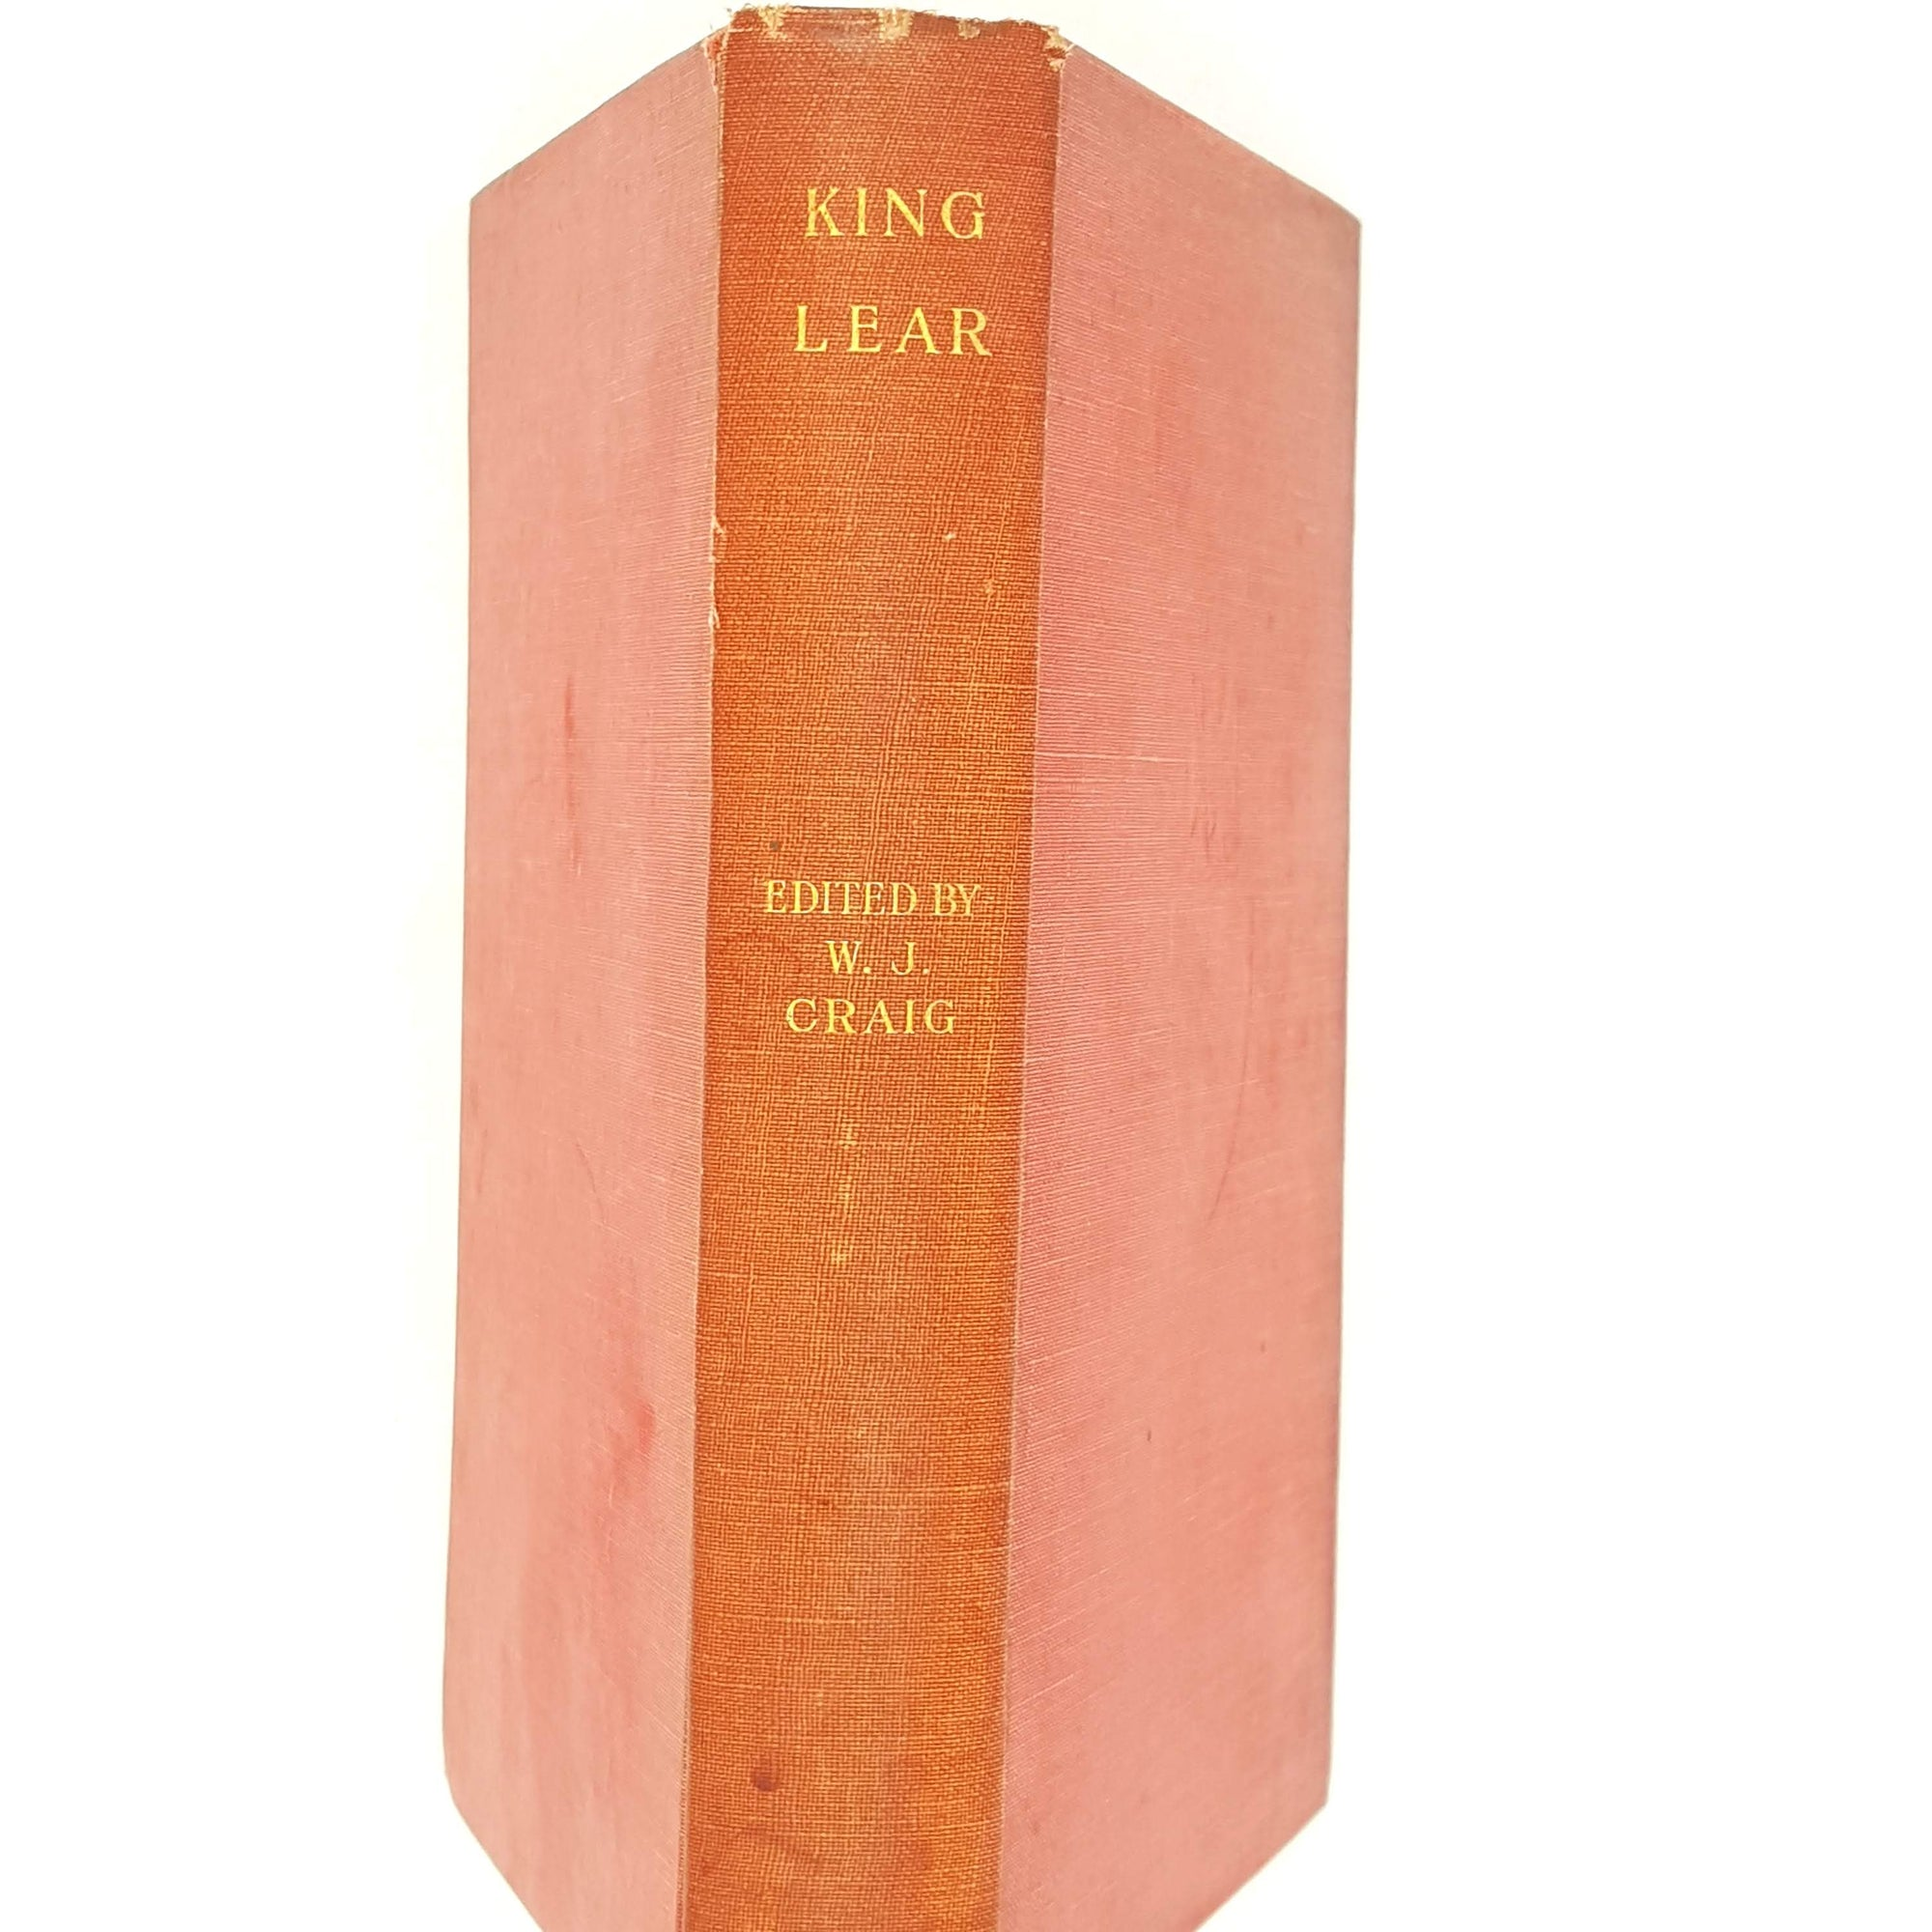 Vintage King Lear by Shakespeare 1927